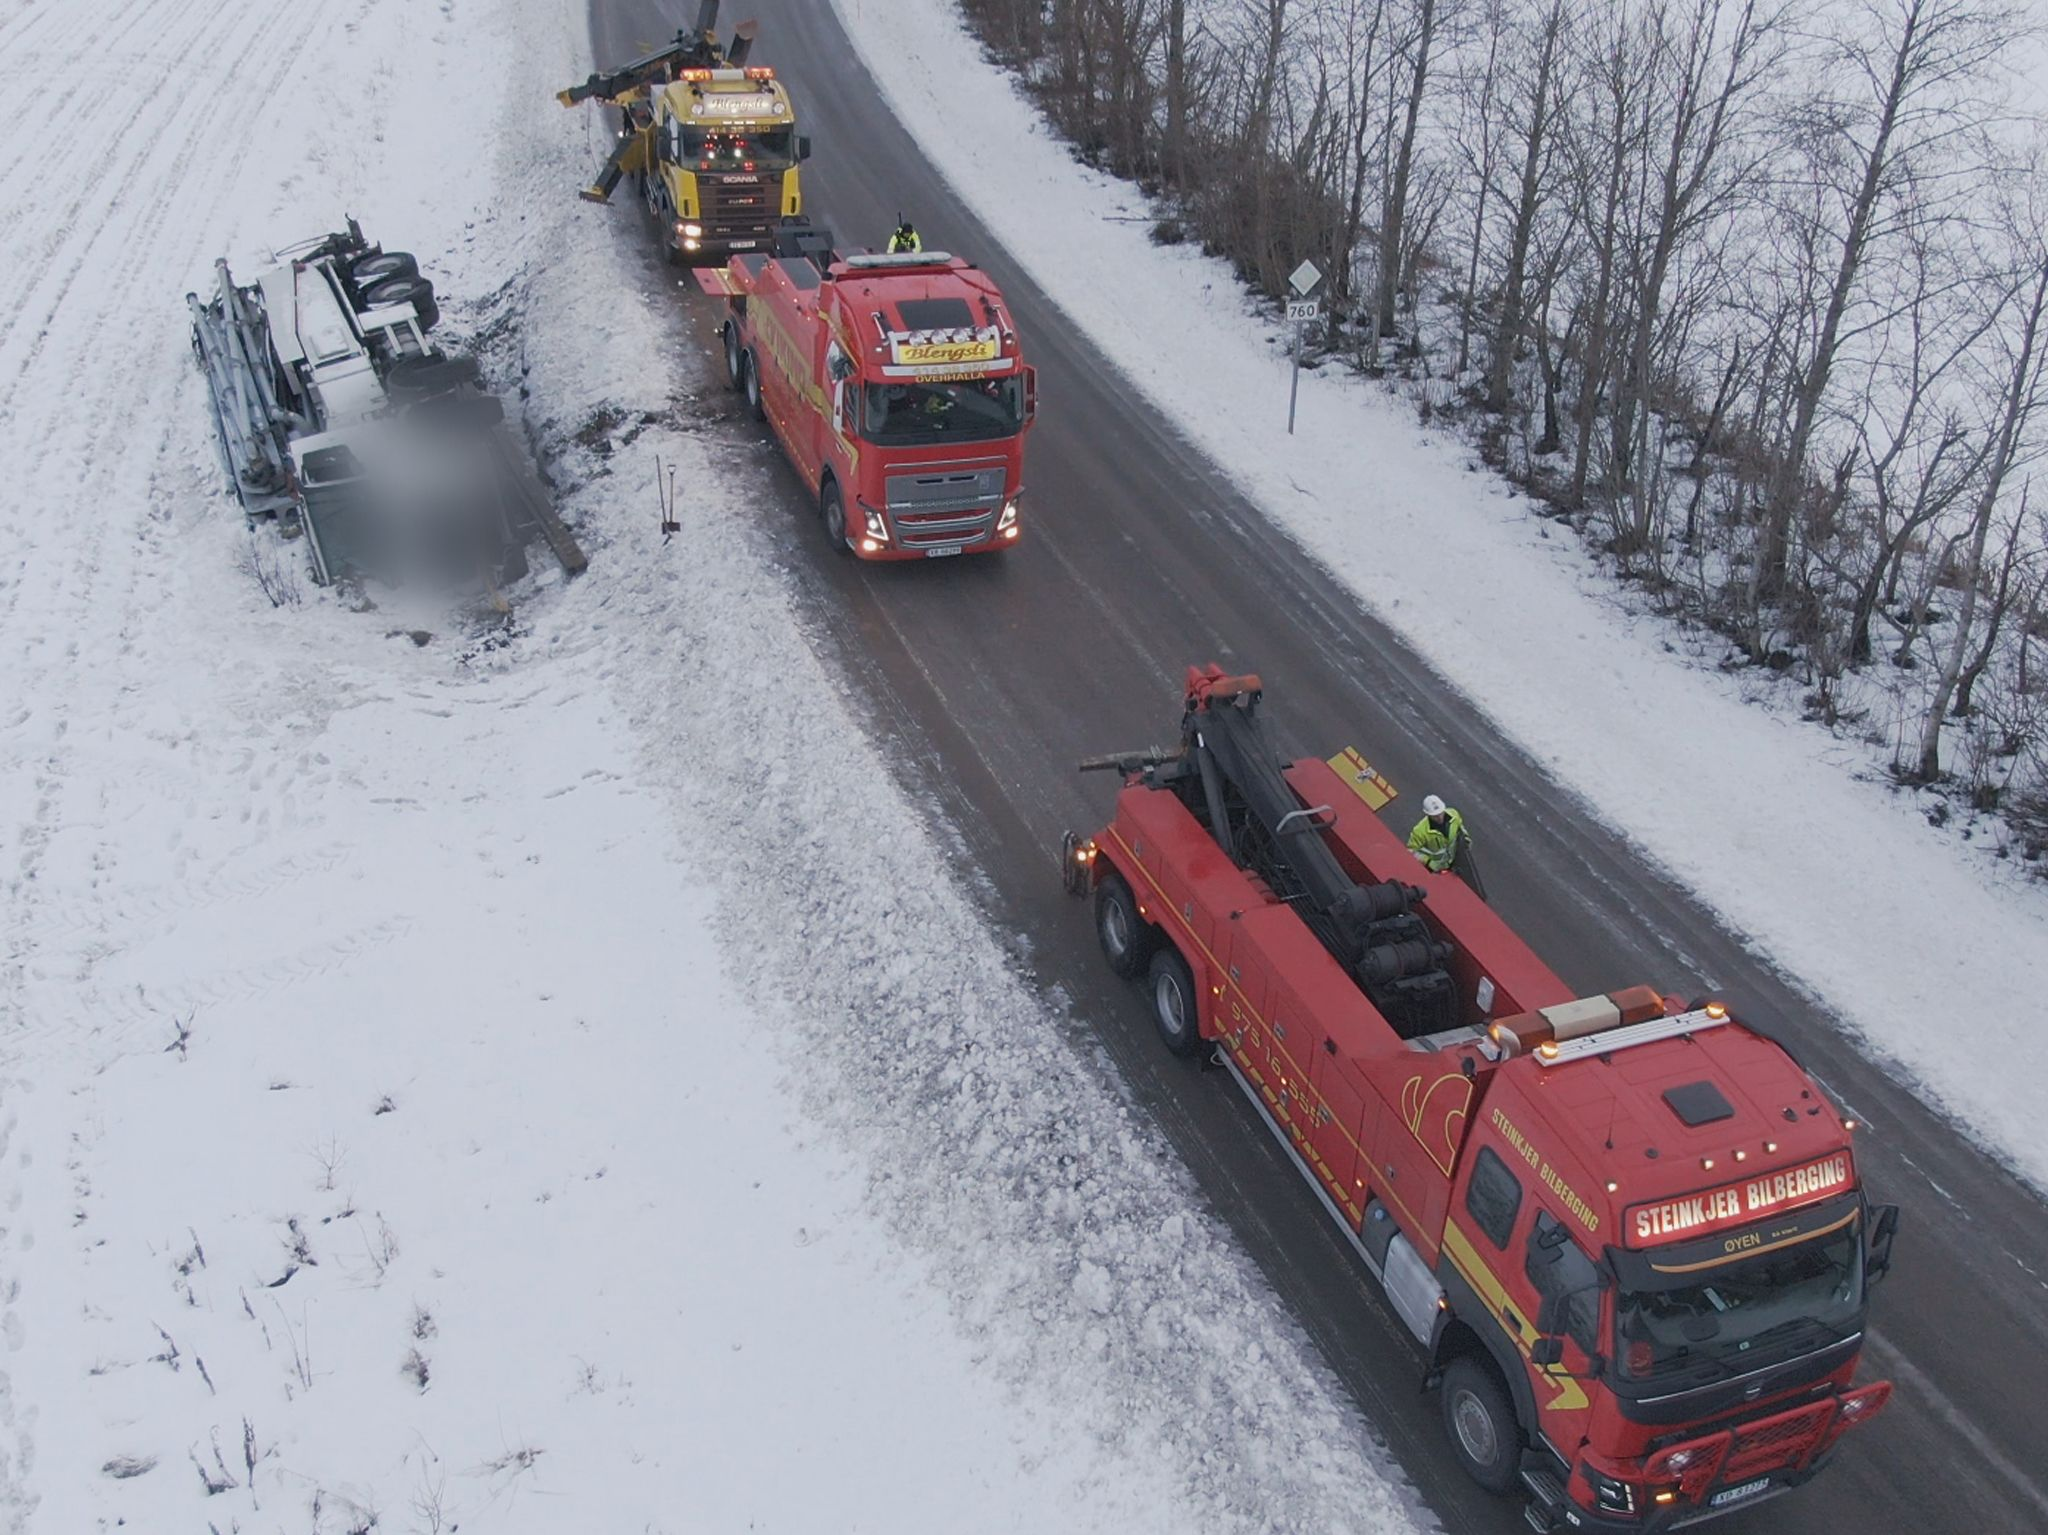 A large truck needs a rescue. This image is from Ice Road Rescue. [Photo of the day - October 2020]